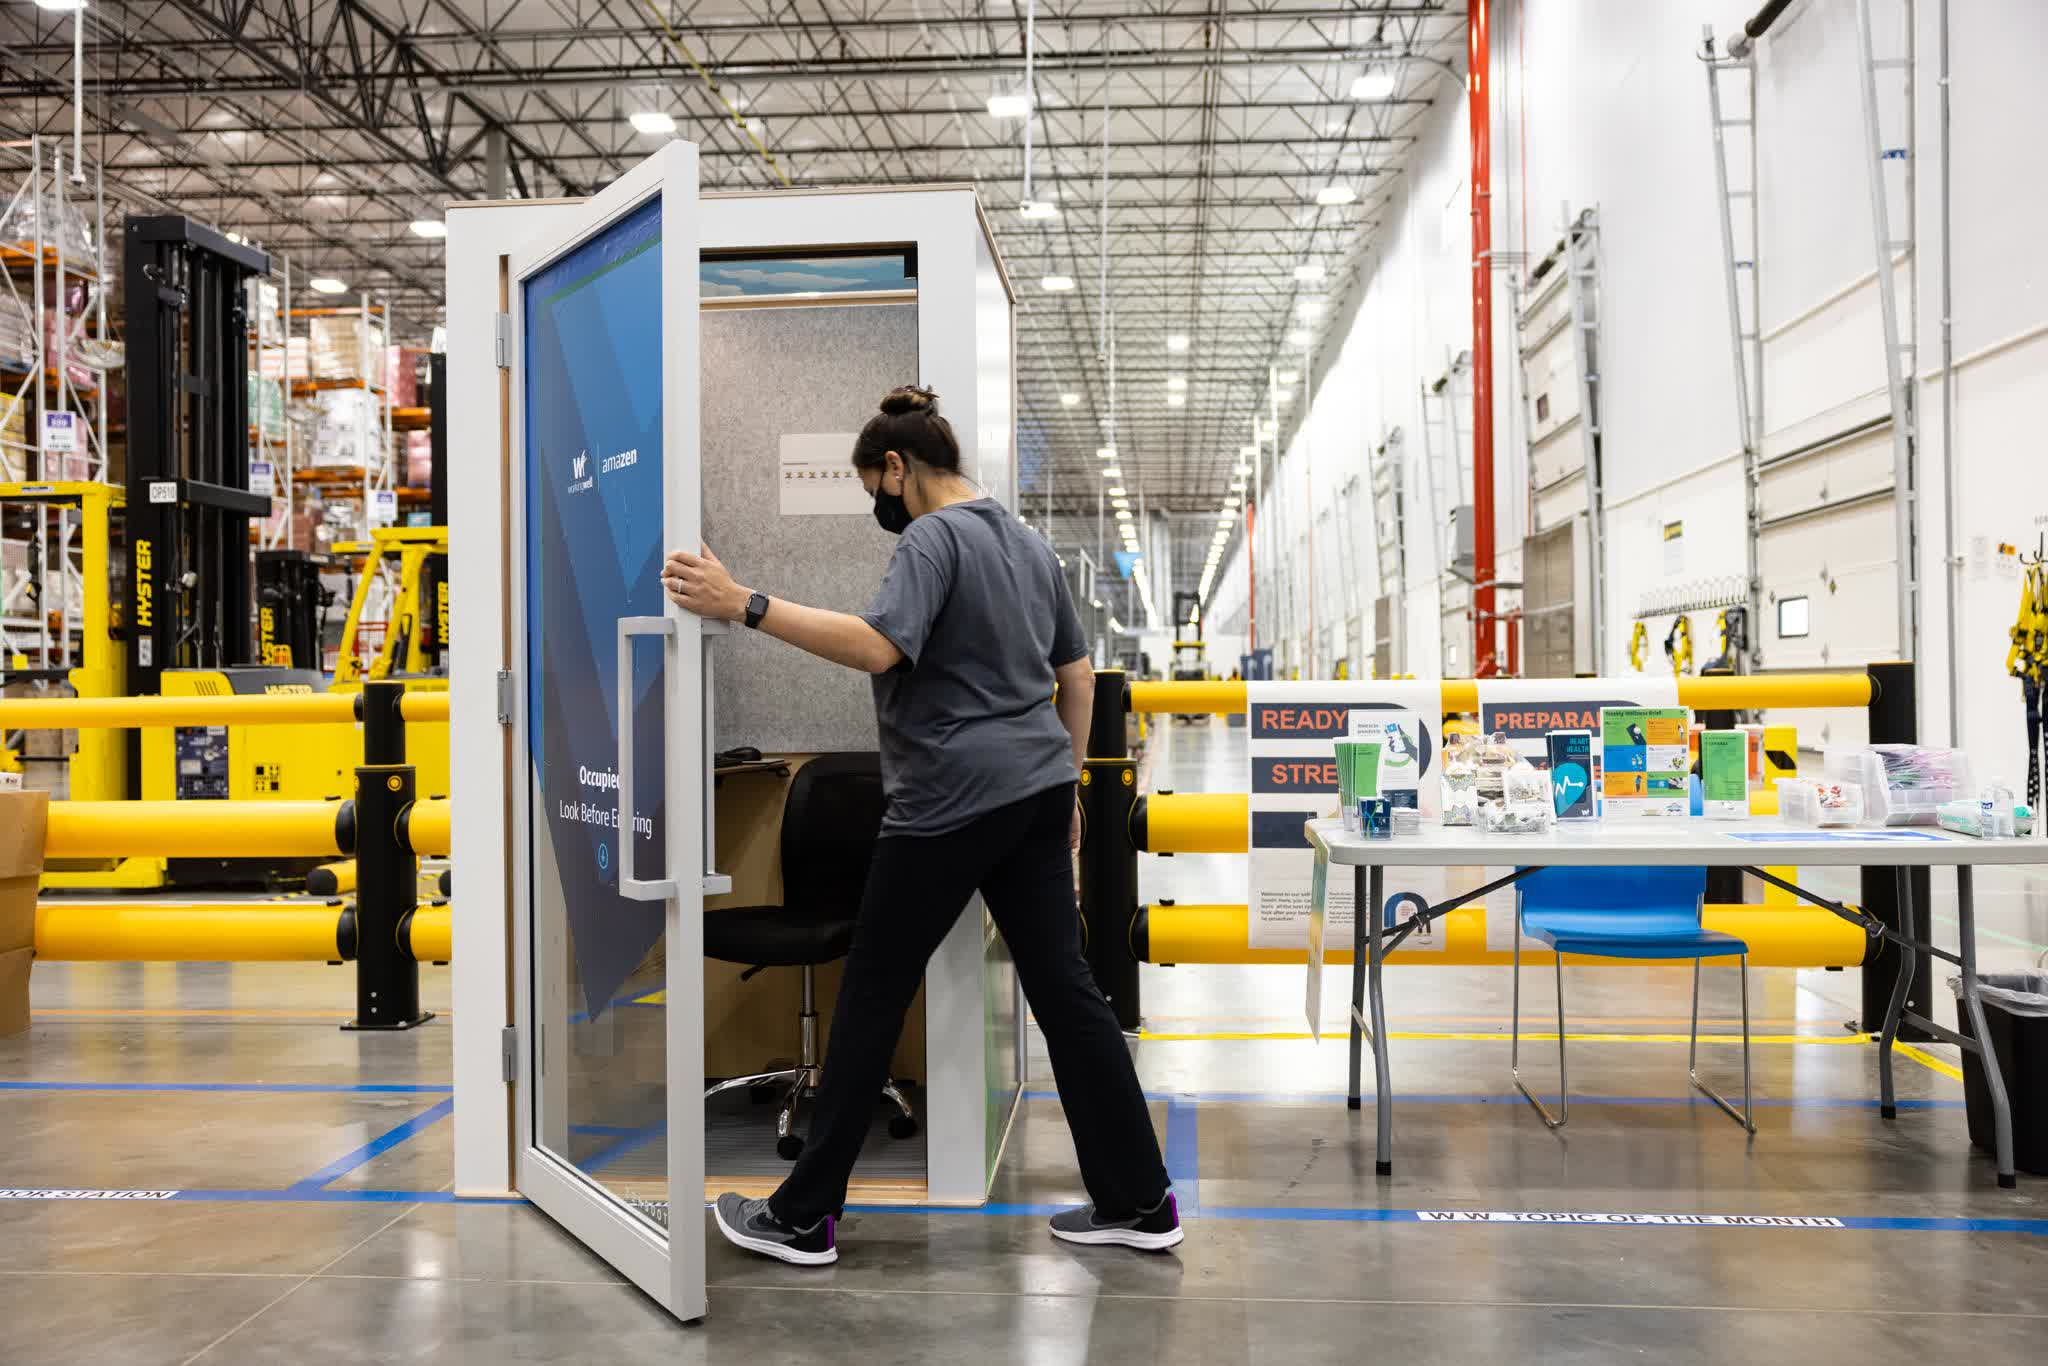 Amazon is installing 'individual interactive kiosks' at fulfillment centers to promote mindfulness practices